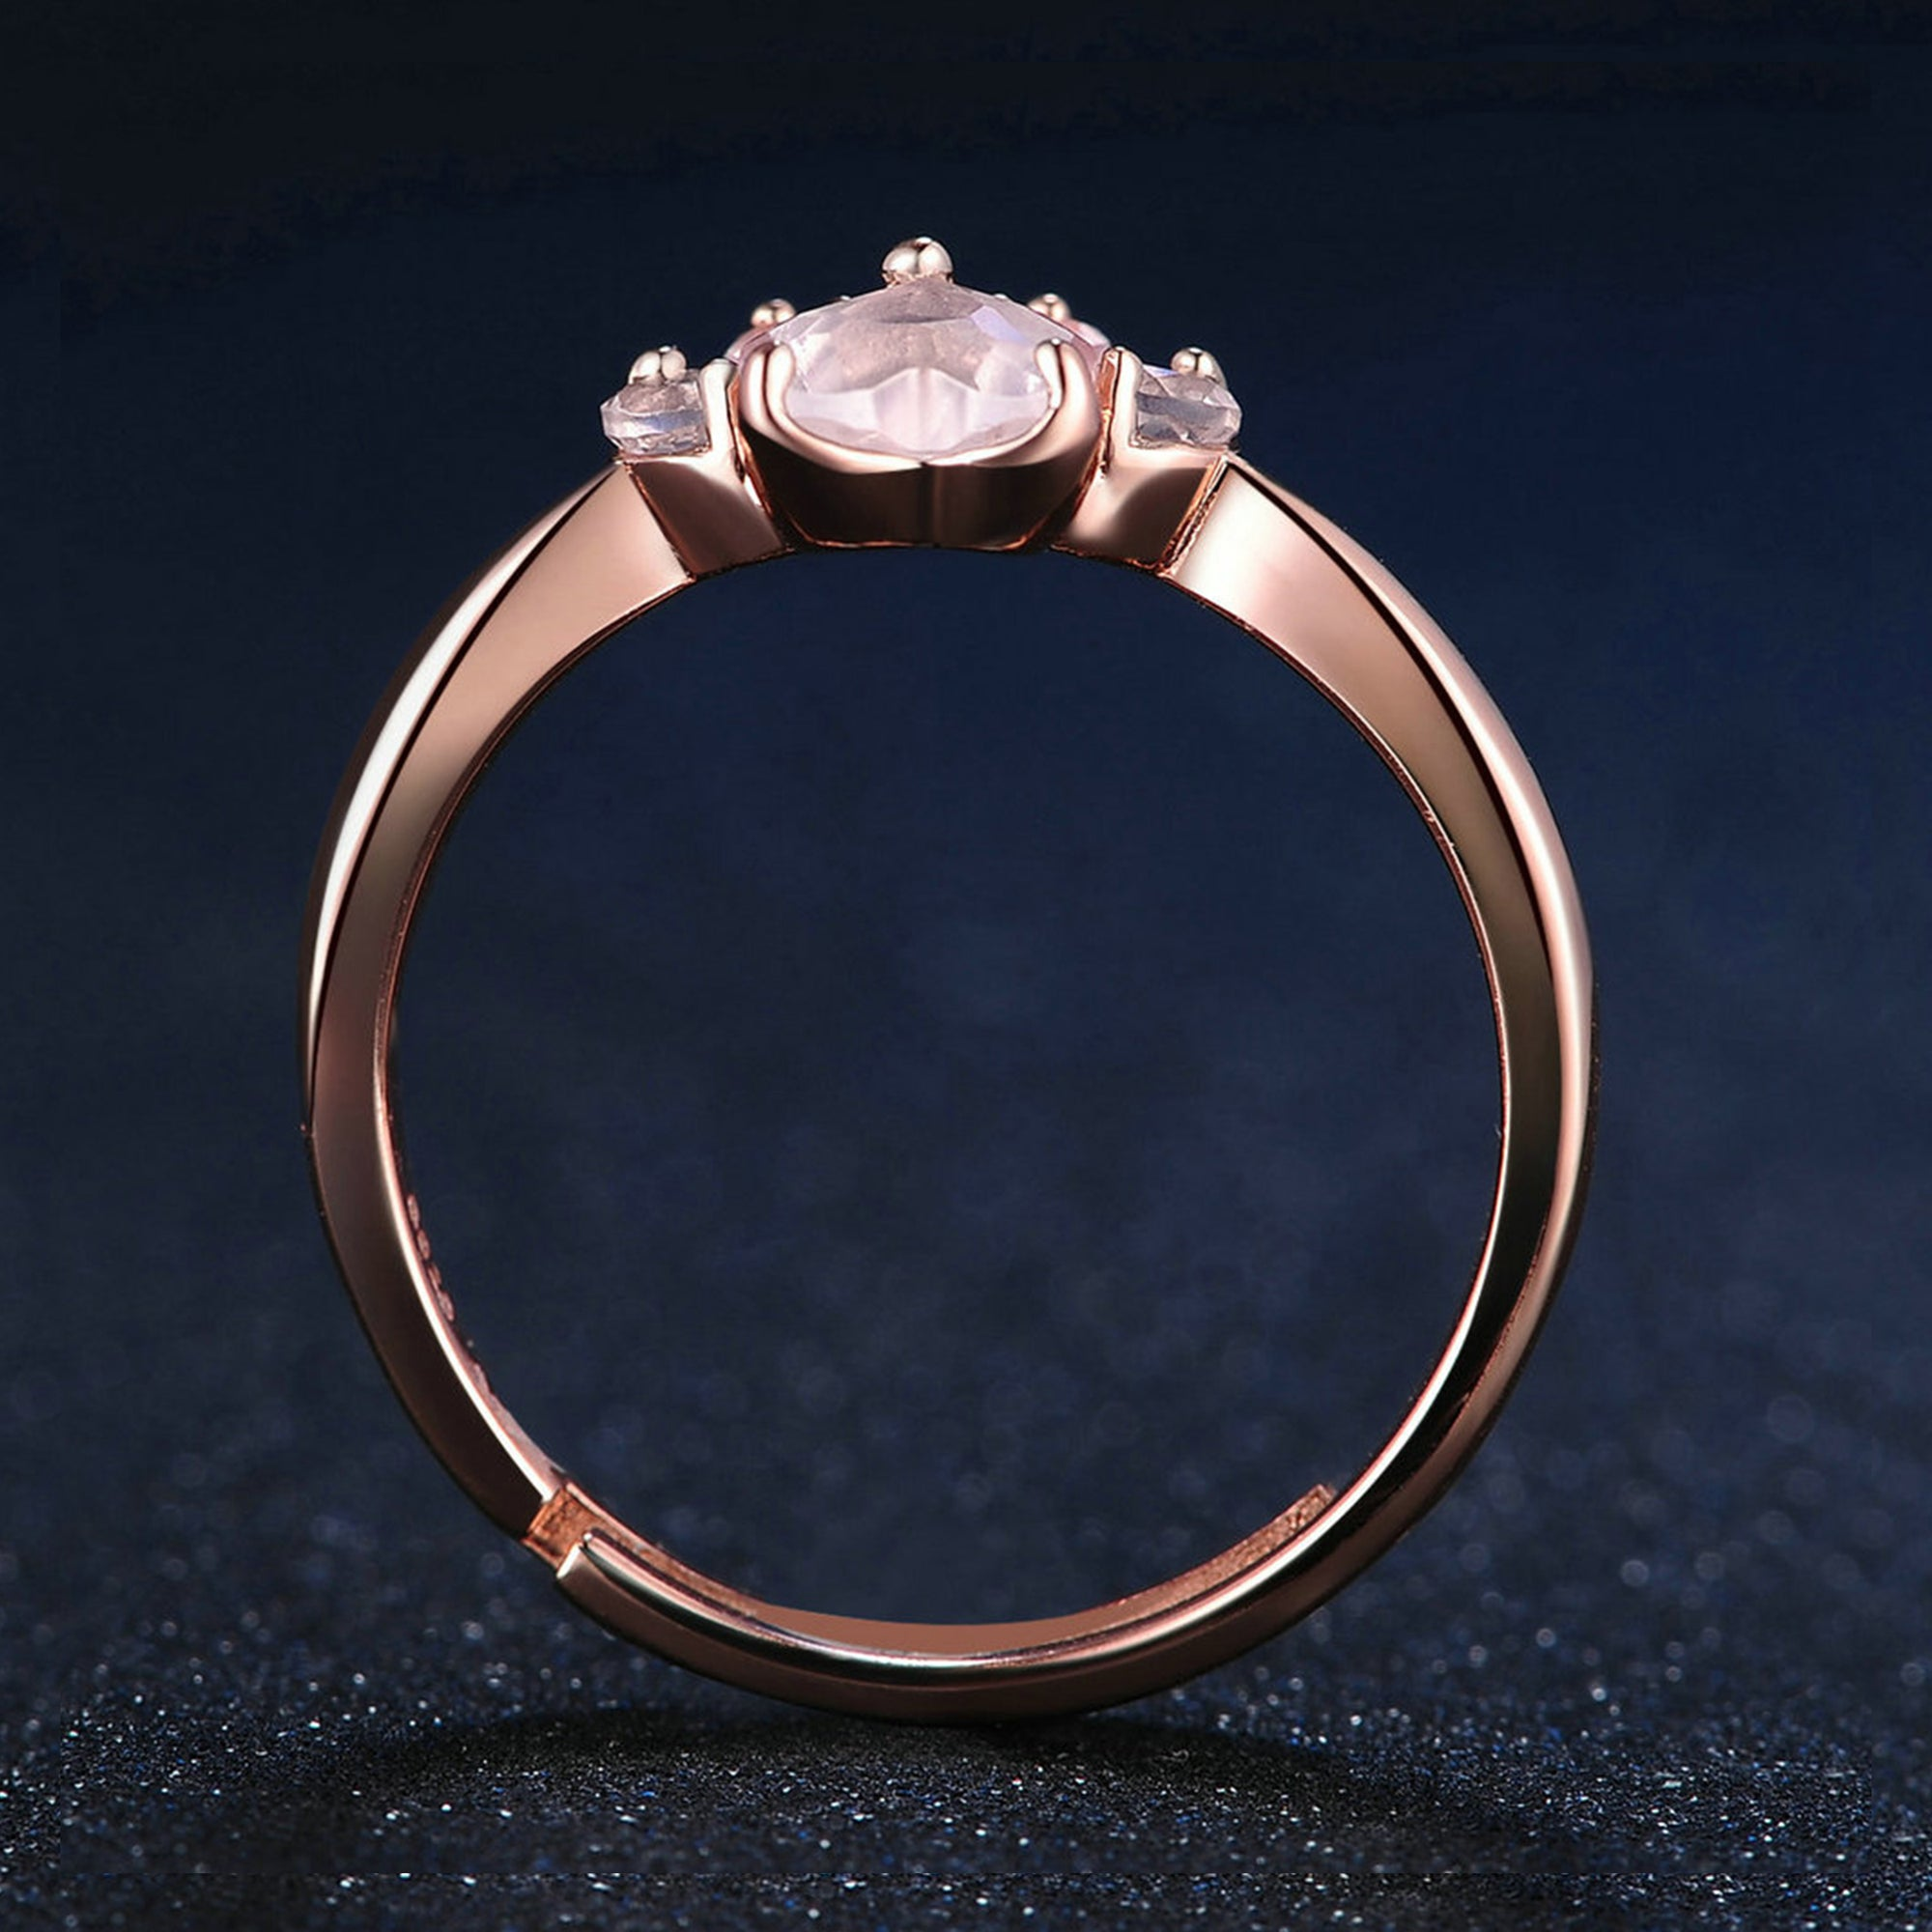 rings pink gold lyst michael kors set product quartz wedding gallery pyramid in jewelry rose ring normal pave